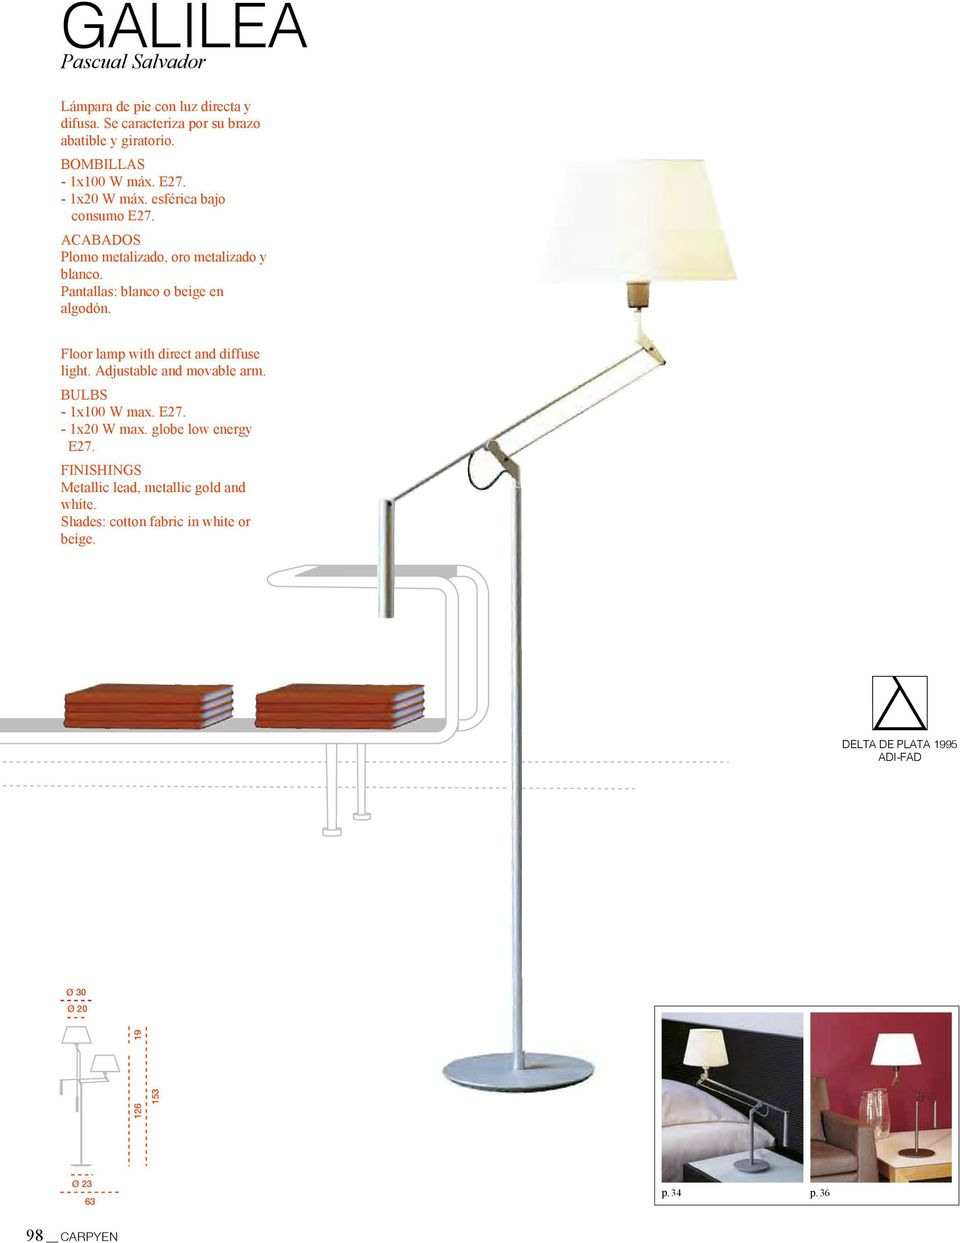 Floor lamp with direct and diffuse light. Adjustable and movable arm. BULBS - 1x100 W max. E27. - 1x20 W max. globe low energy E27.